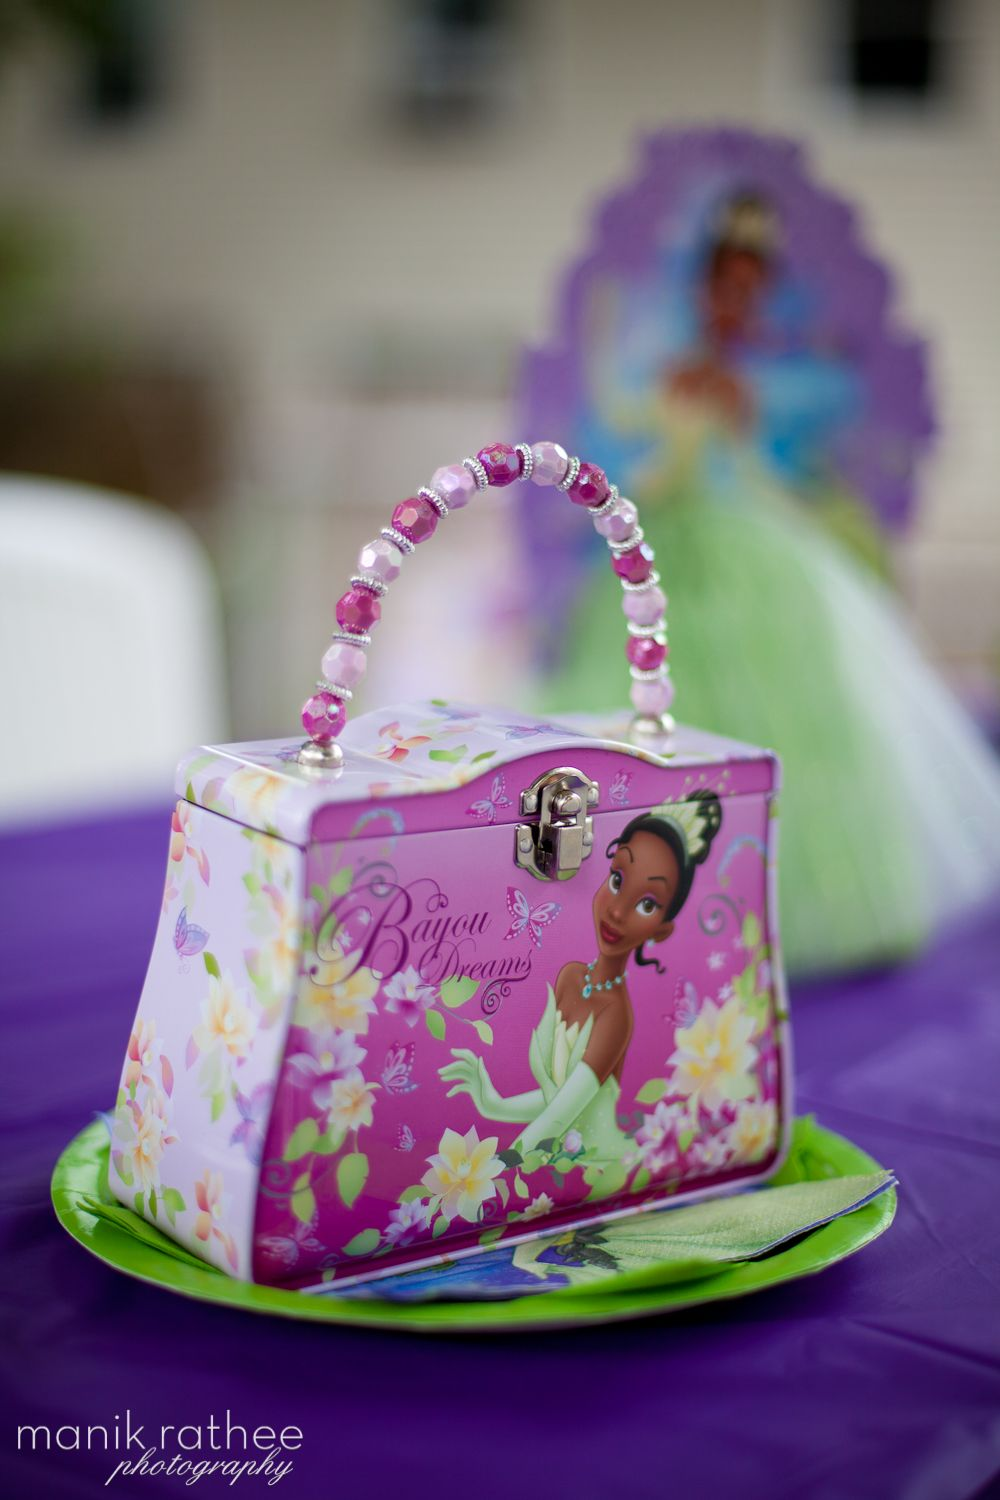 Lunchboxes filled with candy for Favors    Photo: www.ManikRatheePhotography.com